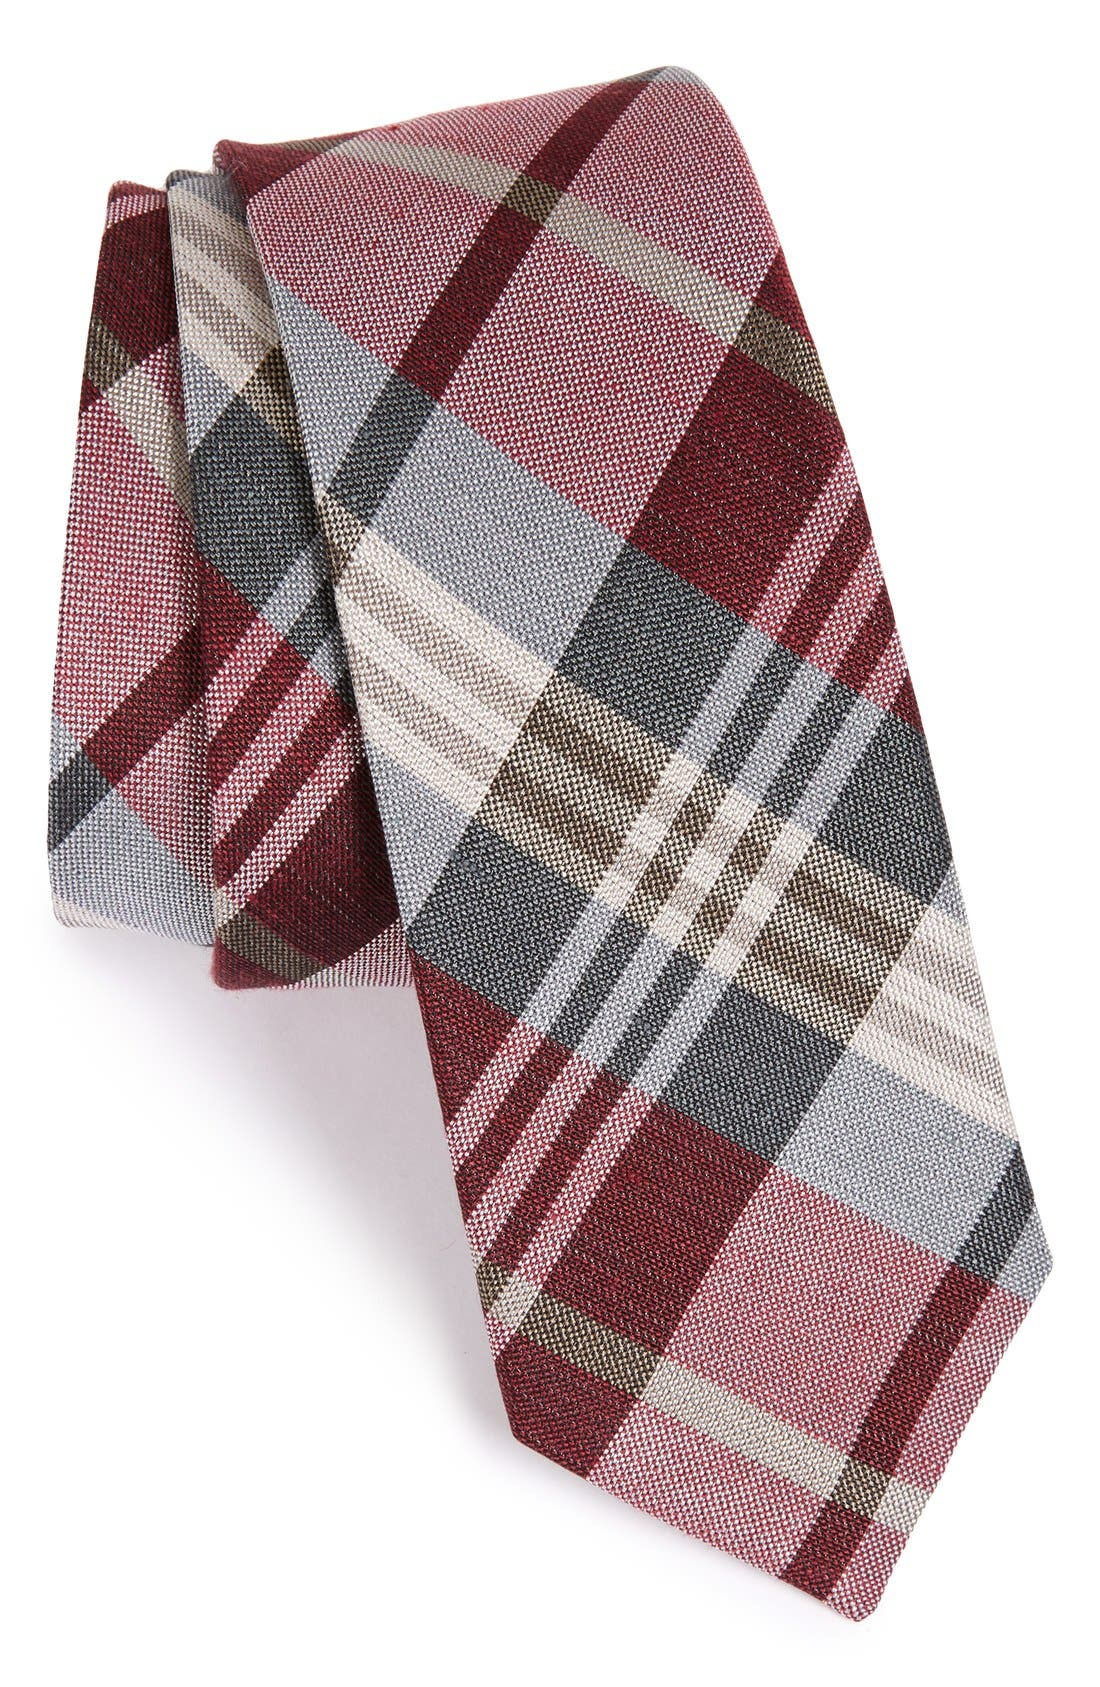 Plaid Silk & Linen Tie,                             Main thumbnail 1, color,                             Burgundy